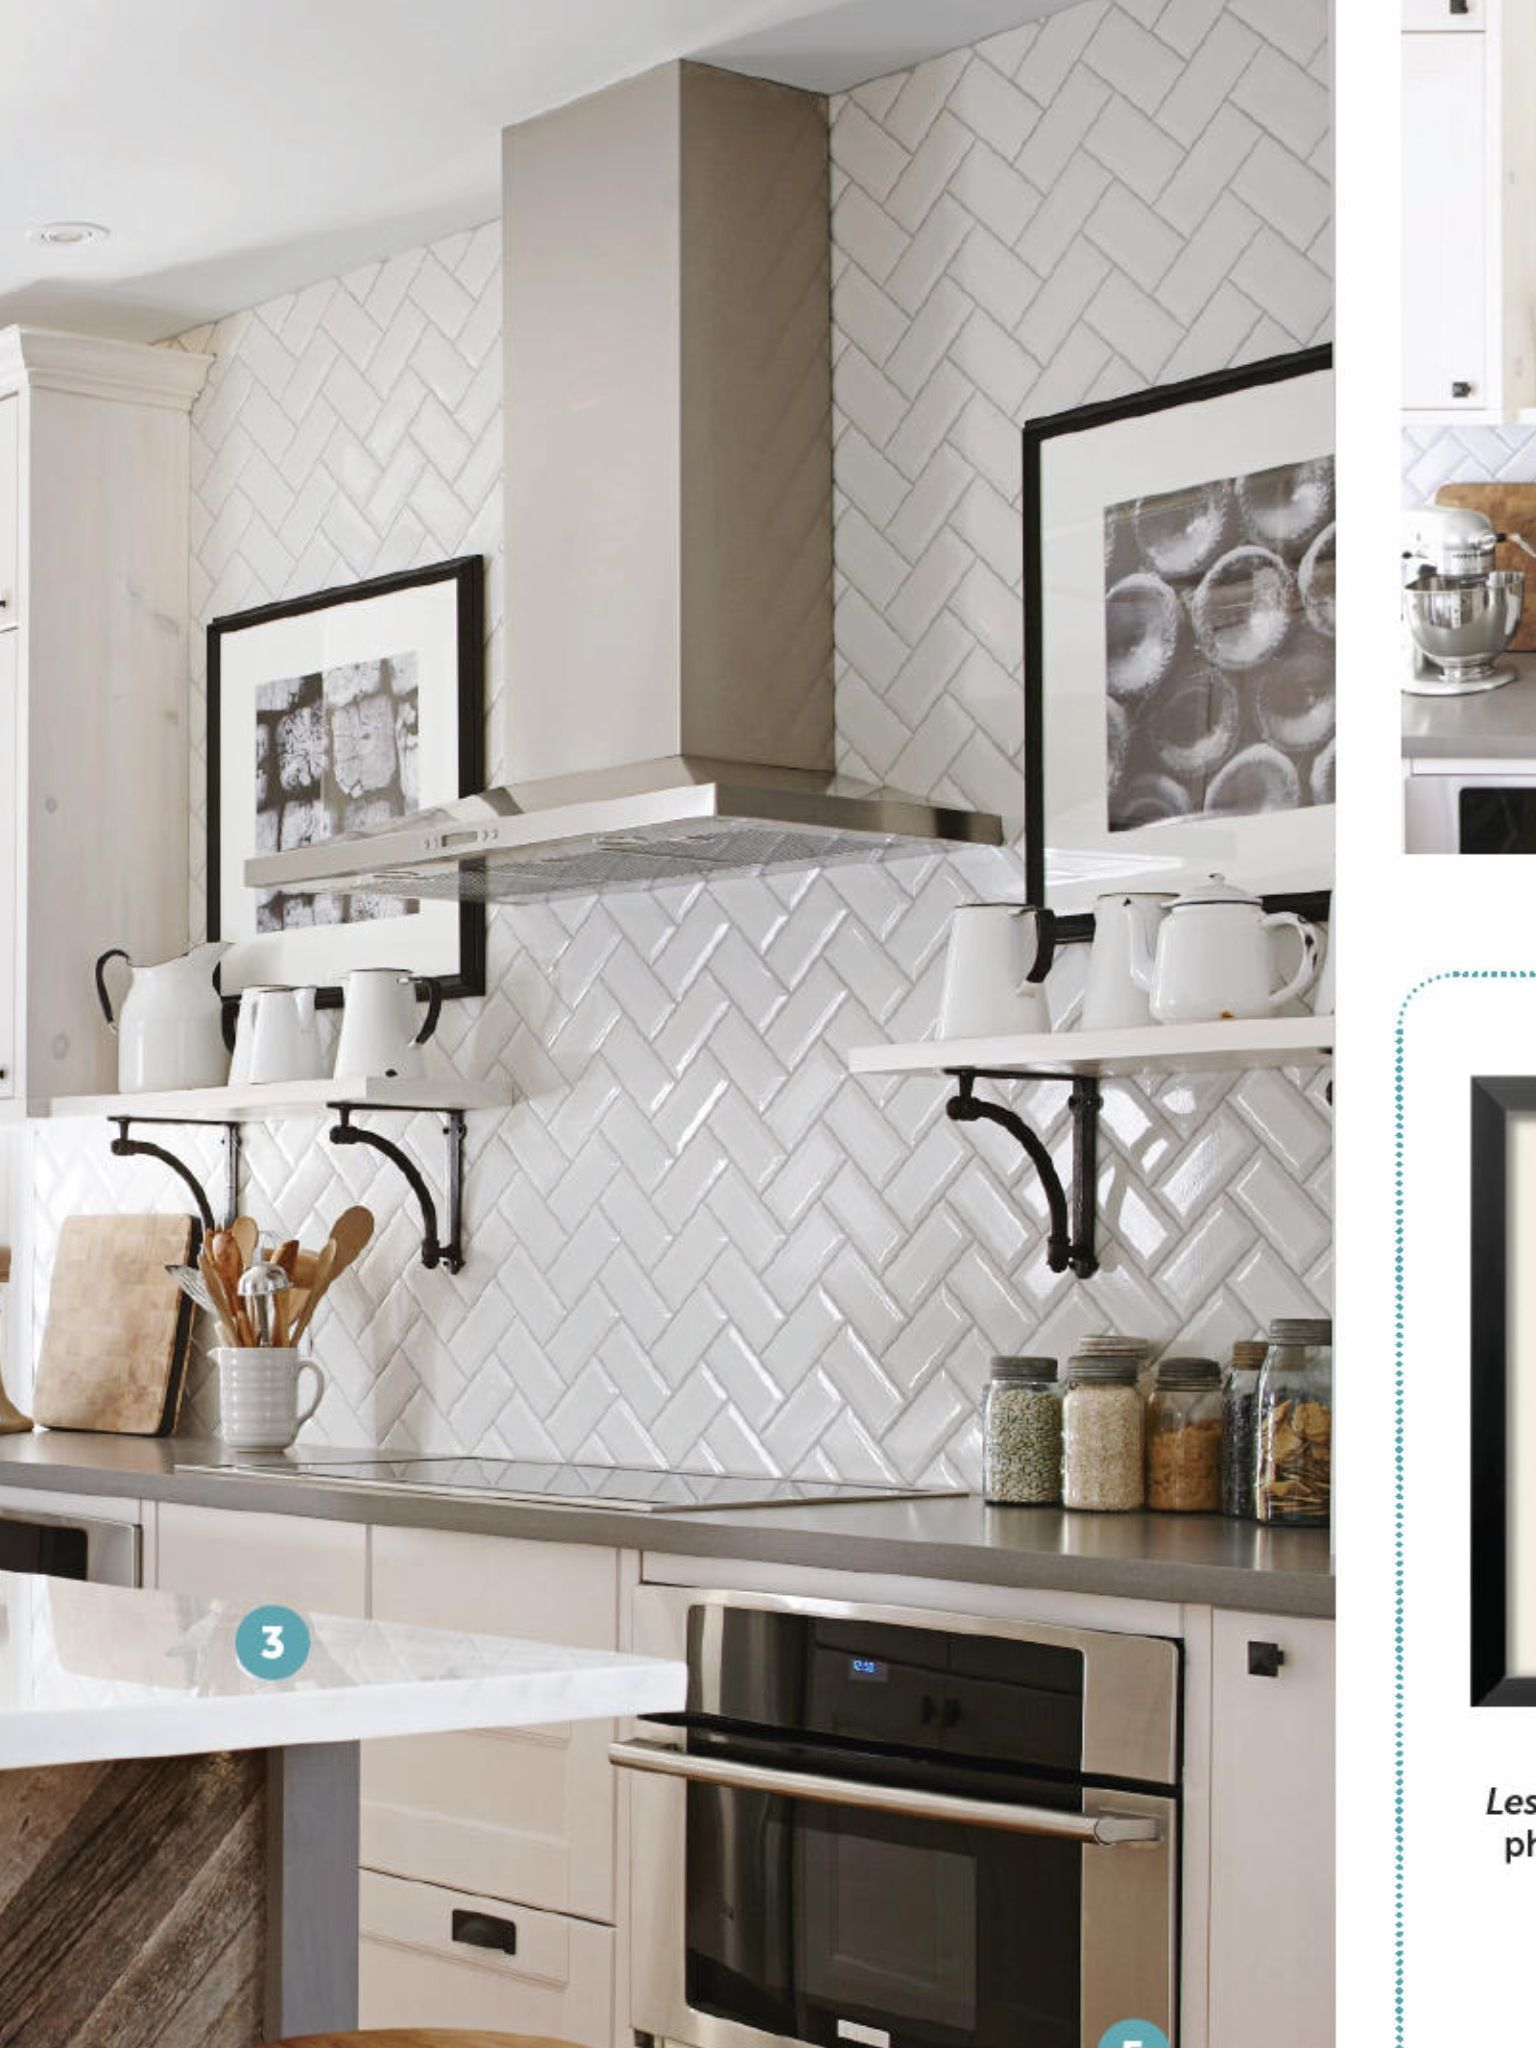 Herringbone Pattern Subway Tile With Images Beveled Subway